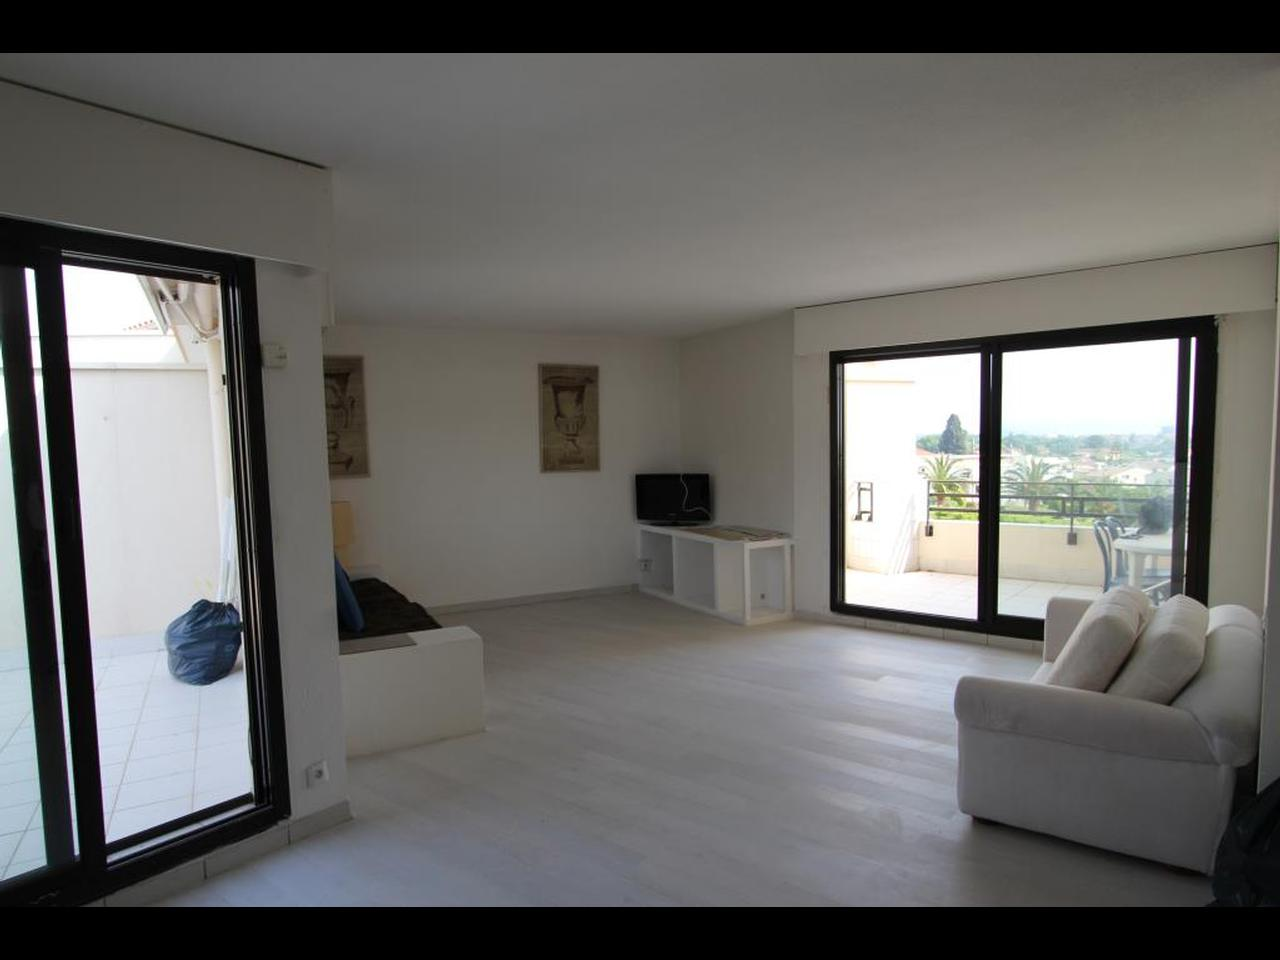 appartement 595 000 euros hadriana lamperti 004